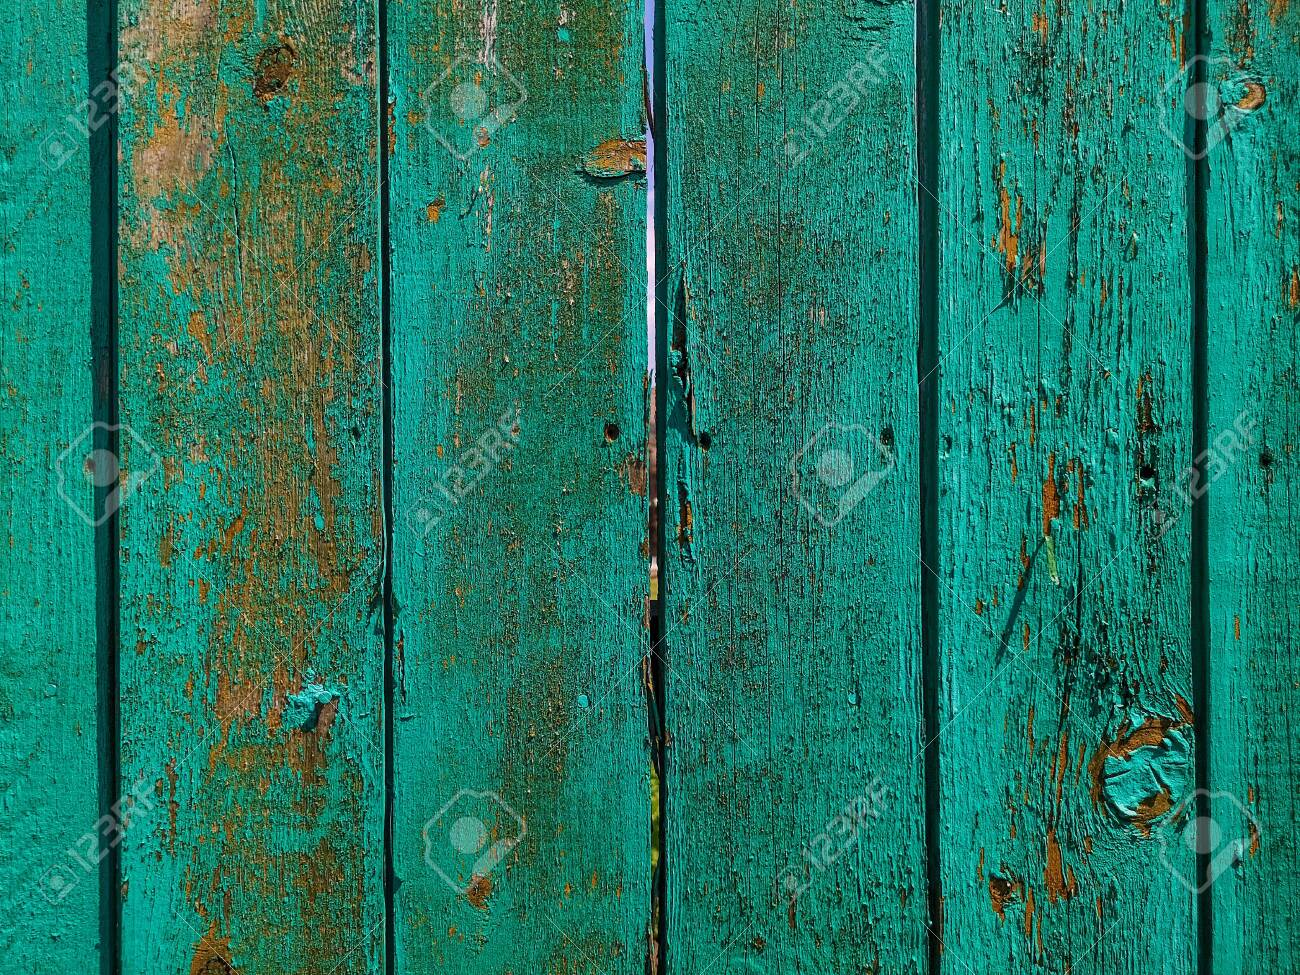 Green wood texture background. .Old ragged painted fence. - 150385336